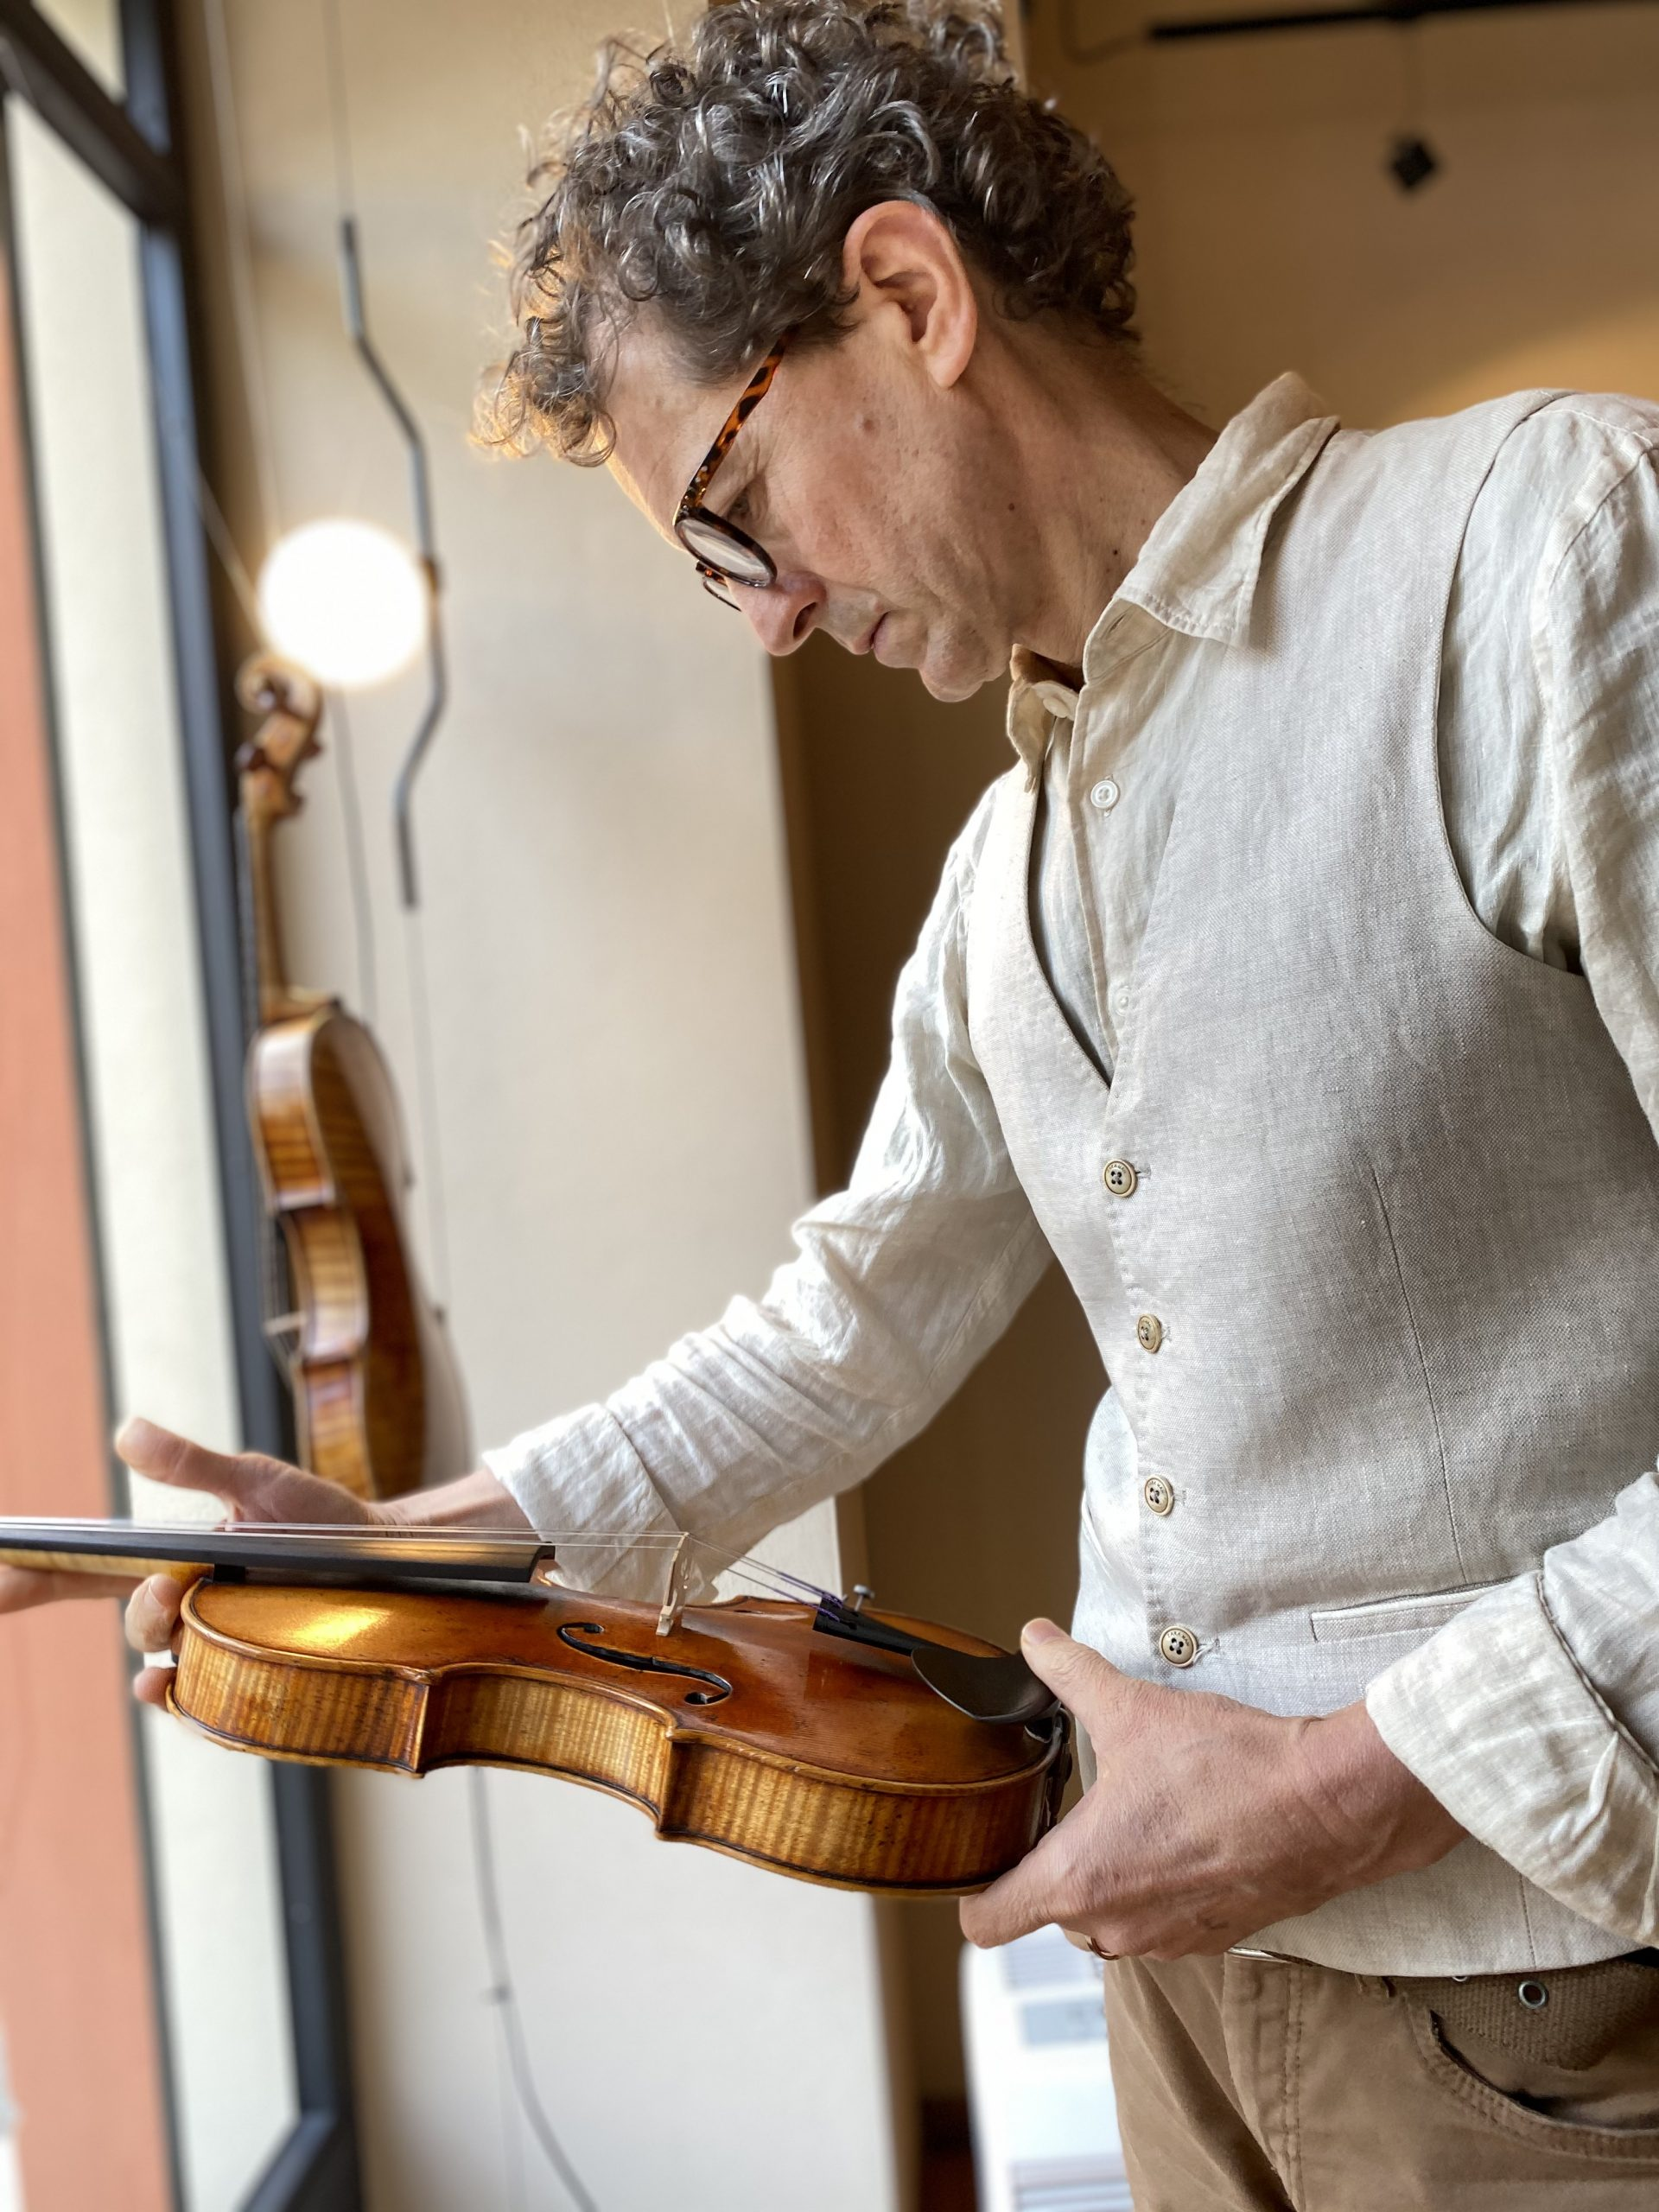 Buying a Violin? Here's How to Pick the Right One!